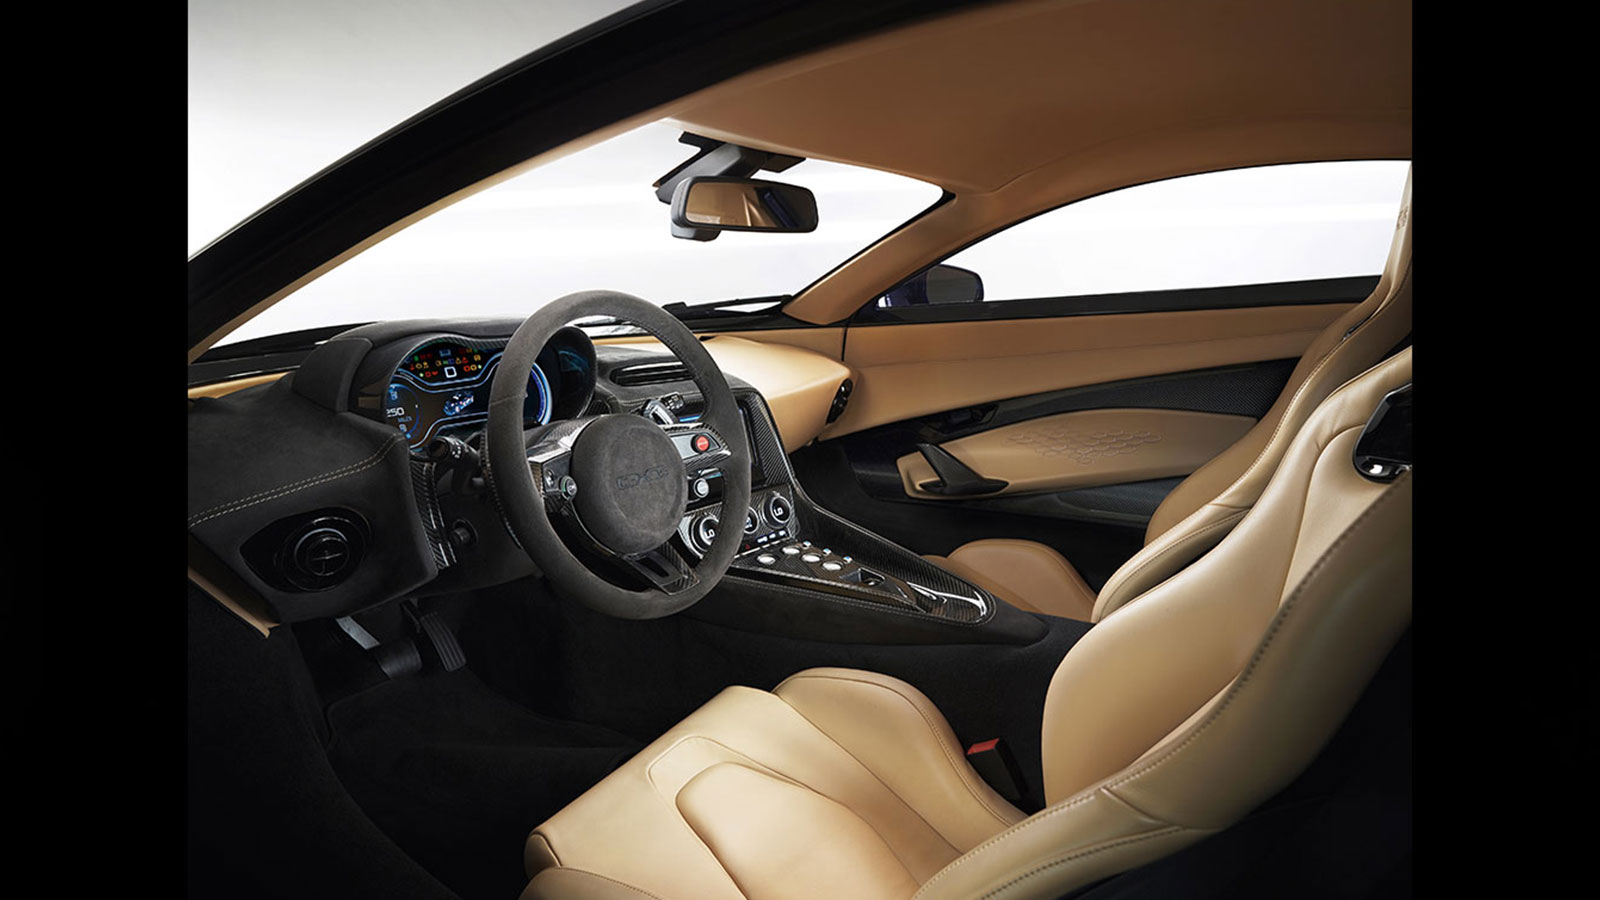 Jaguar C-X75 Interior.